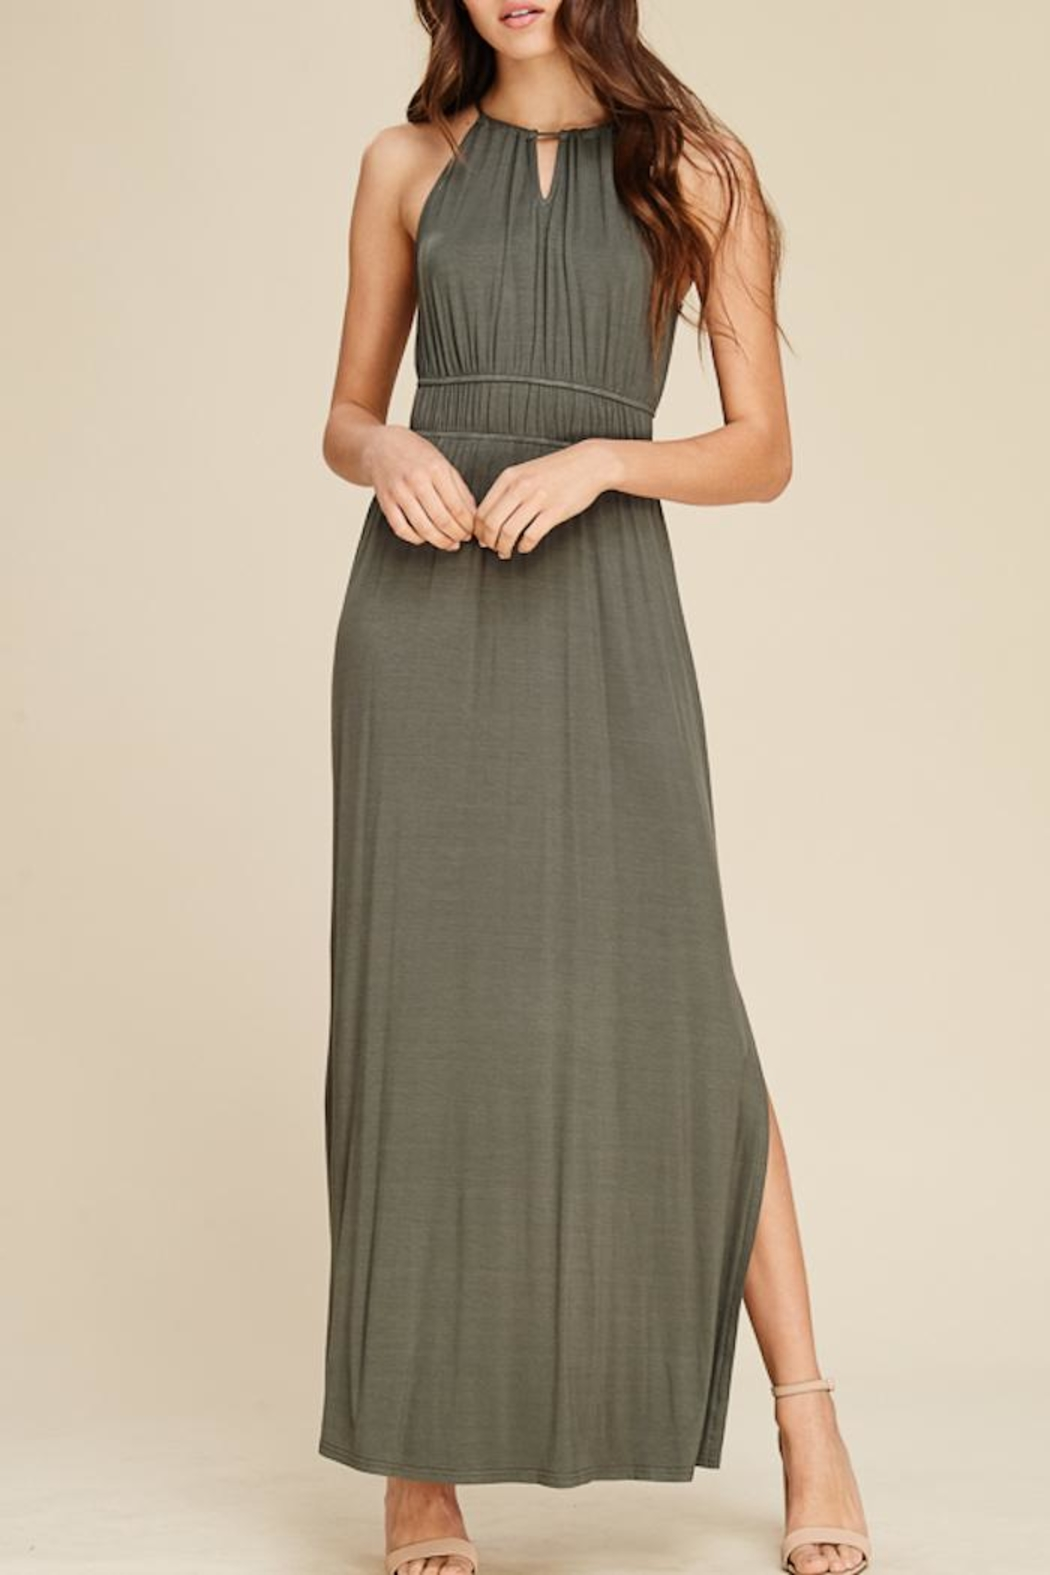 Staccato In The Moment Maxi Dress - Main Image